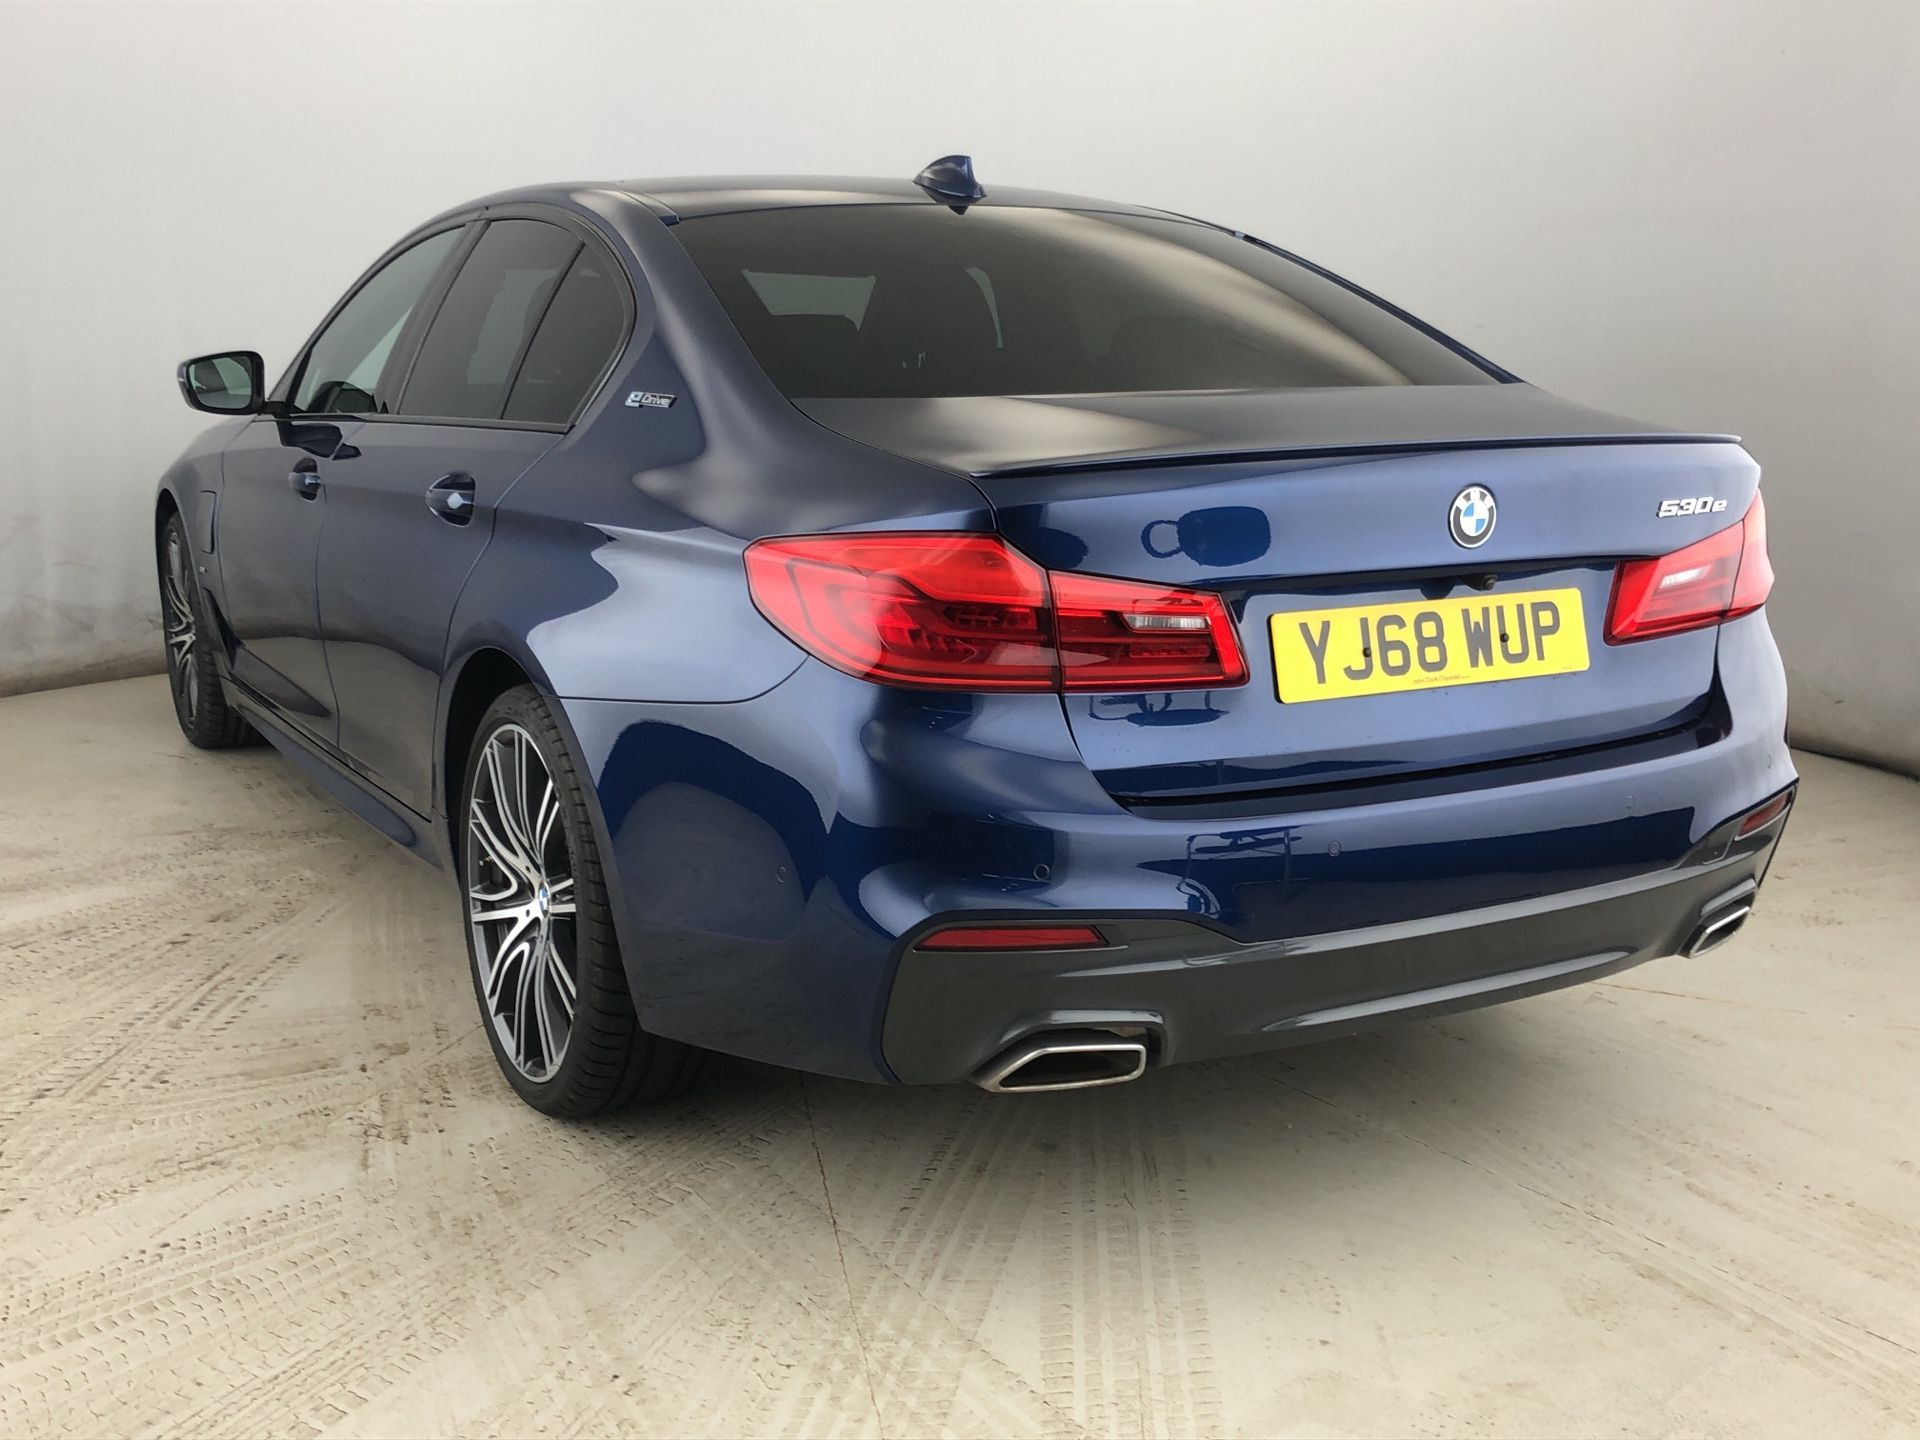 Image 2 - BMW 530e M Sport iPerformance Saloon (YJ68WUP)